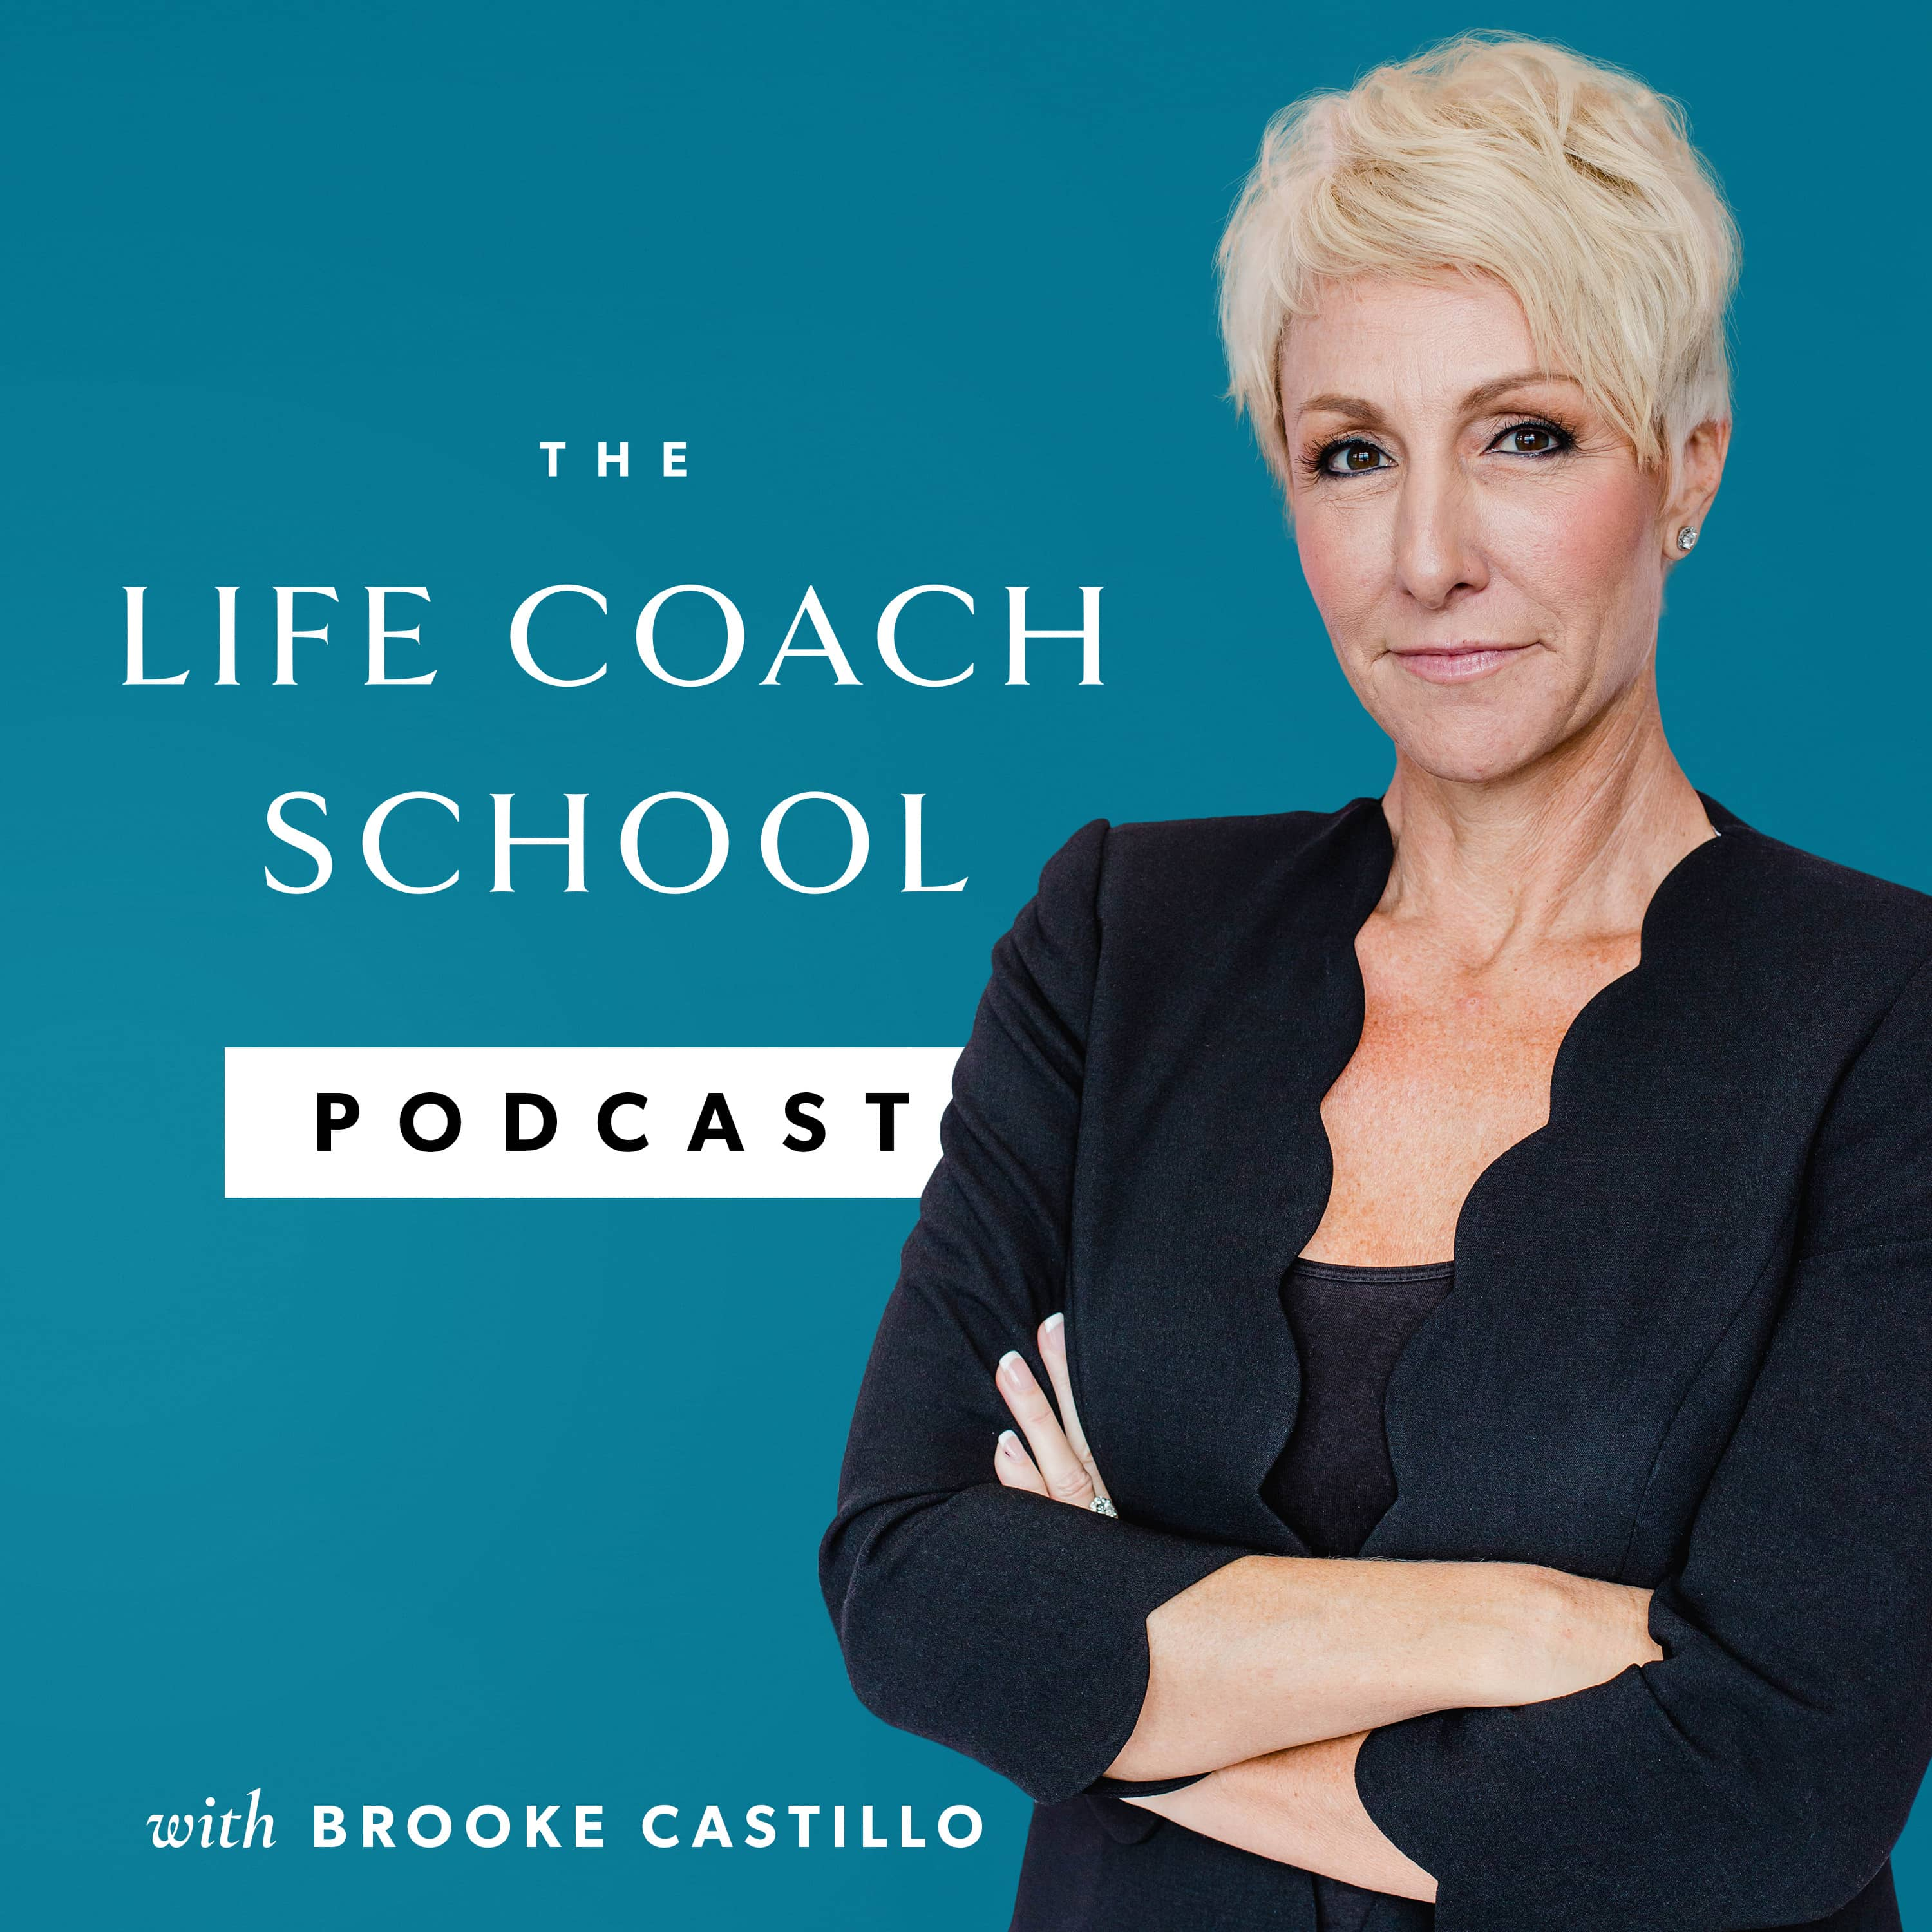 The Life Coach School Podcast